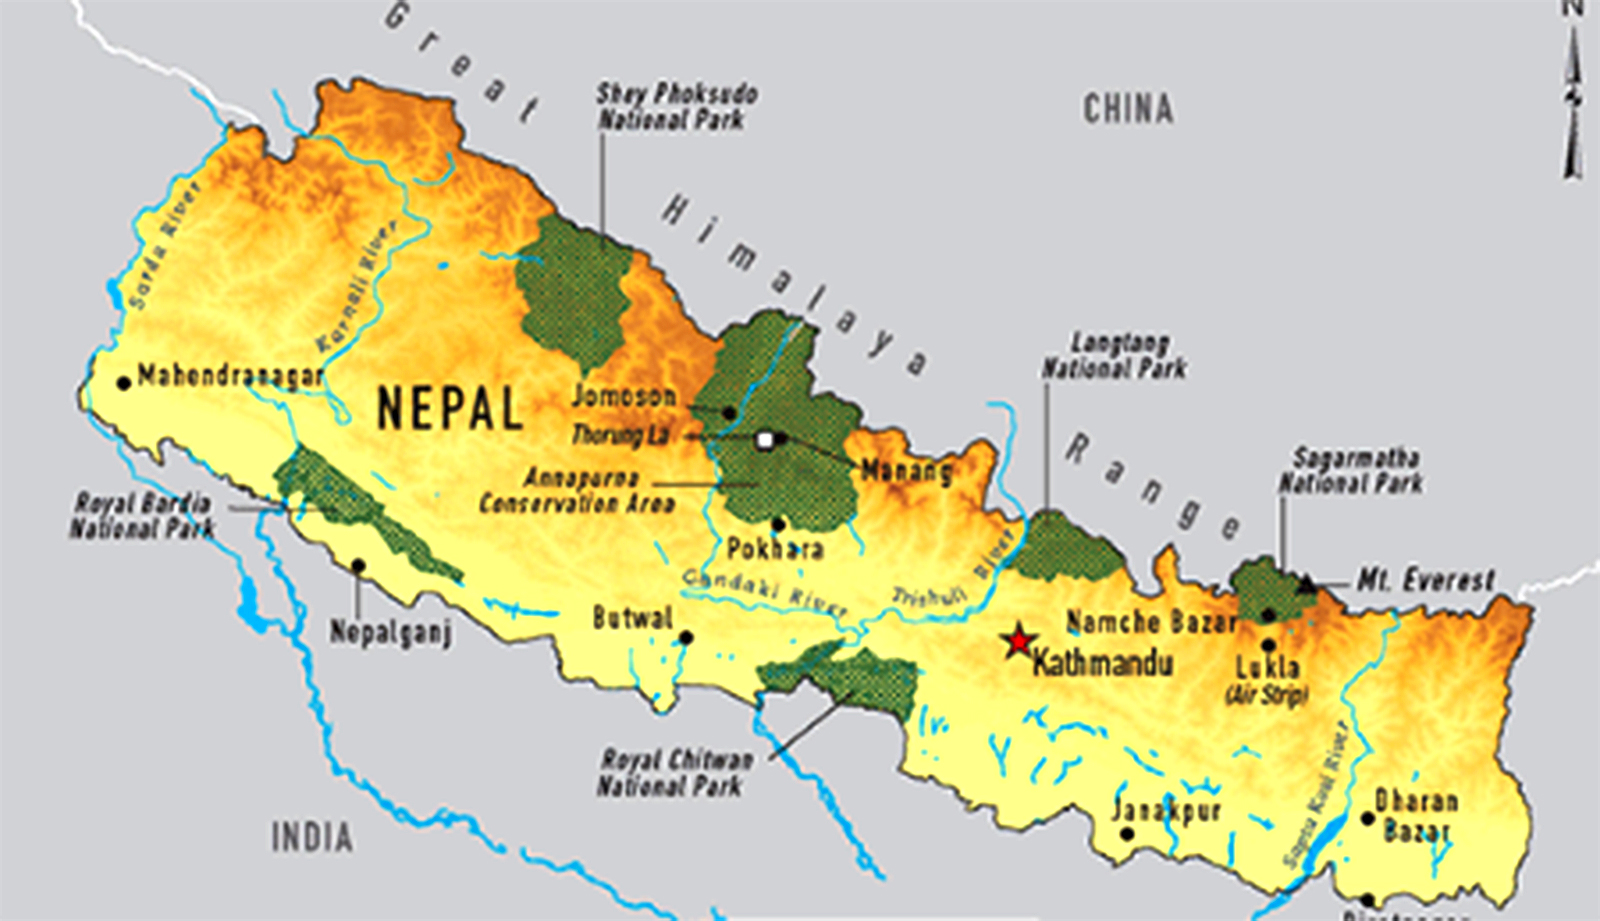 Map of Nepal showing all the national parks with Annapurna Conservation Area clearly showing a s the most significant  in Nepal